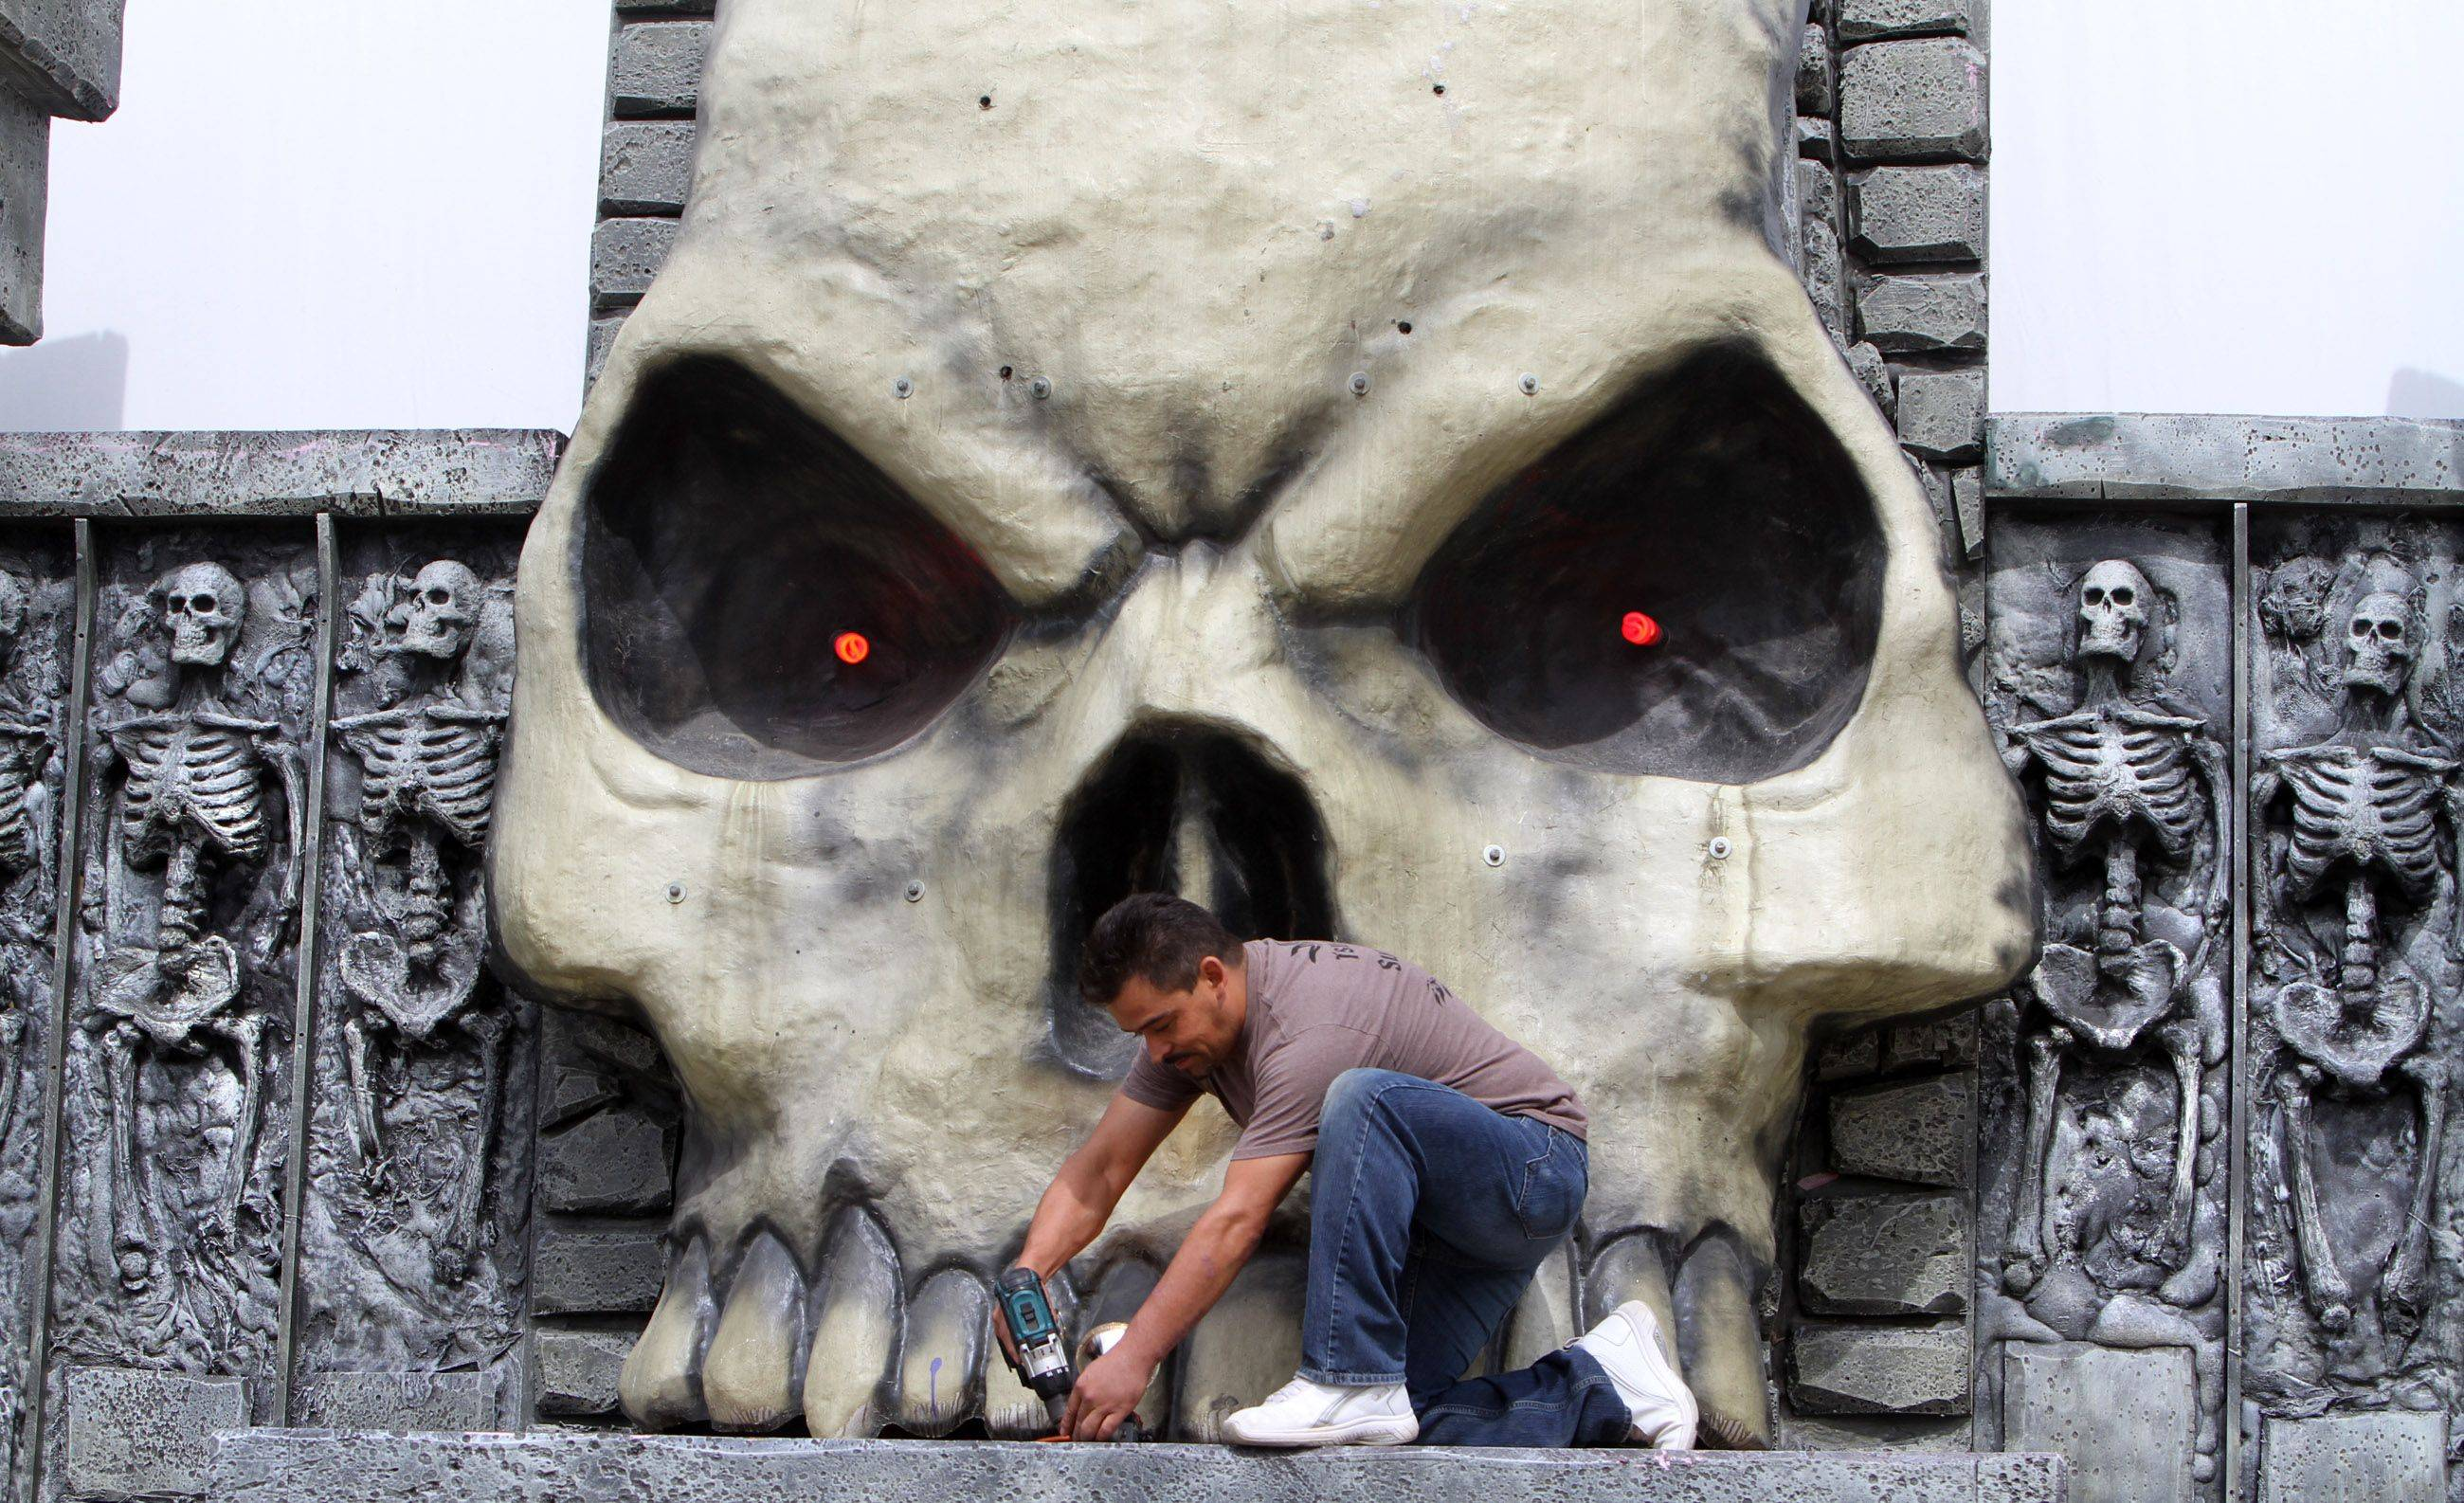 Crew Chief Tello Wilfrido Thursday installs a plate cover over a light at the entrance to Scream in the Park in Rosemont's entertainment district.